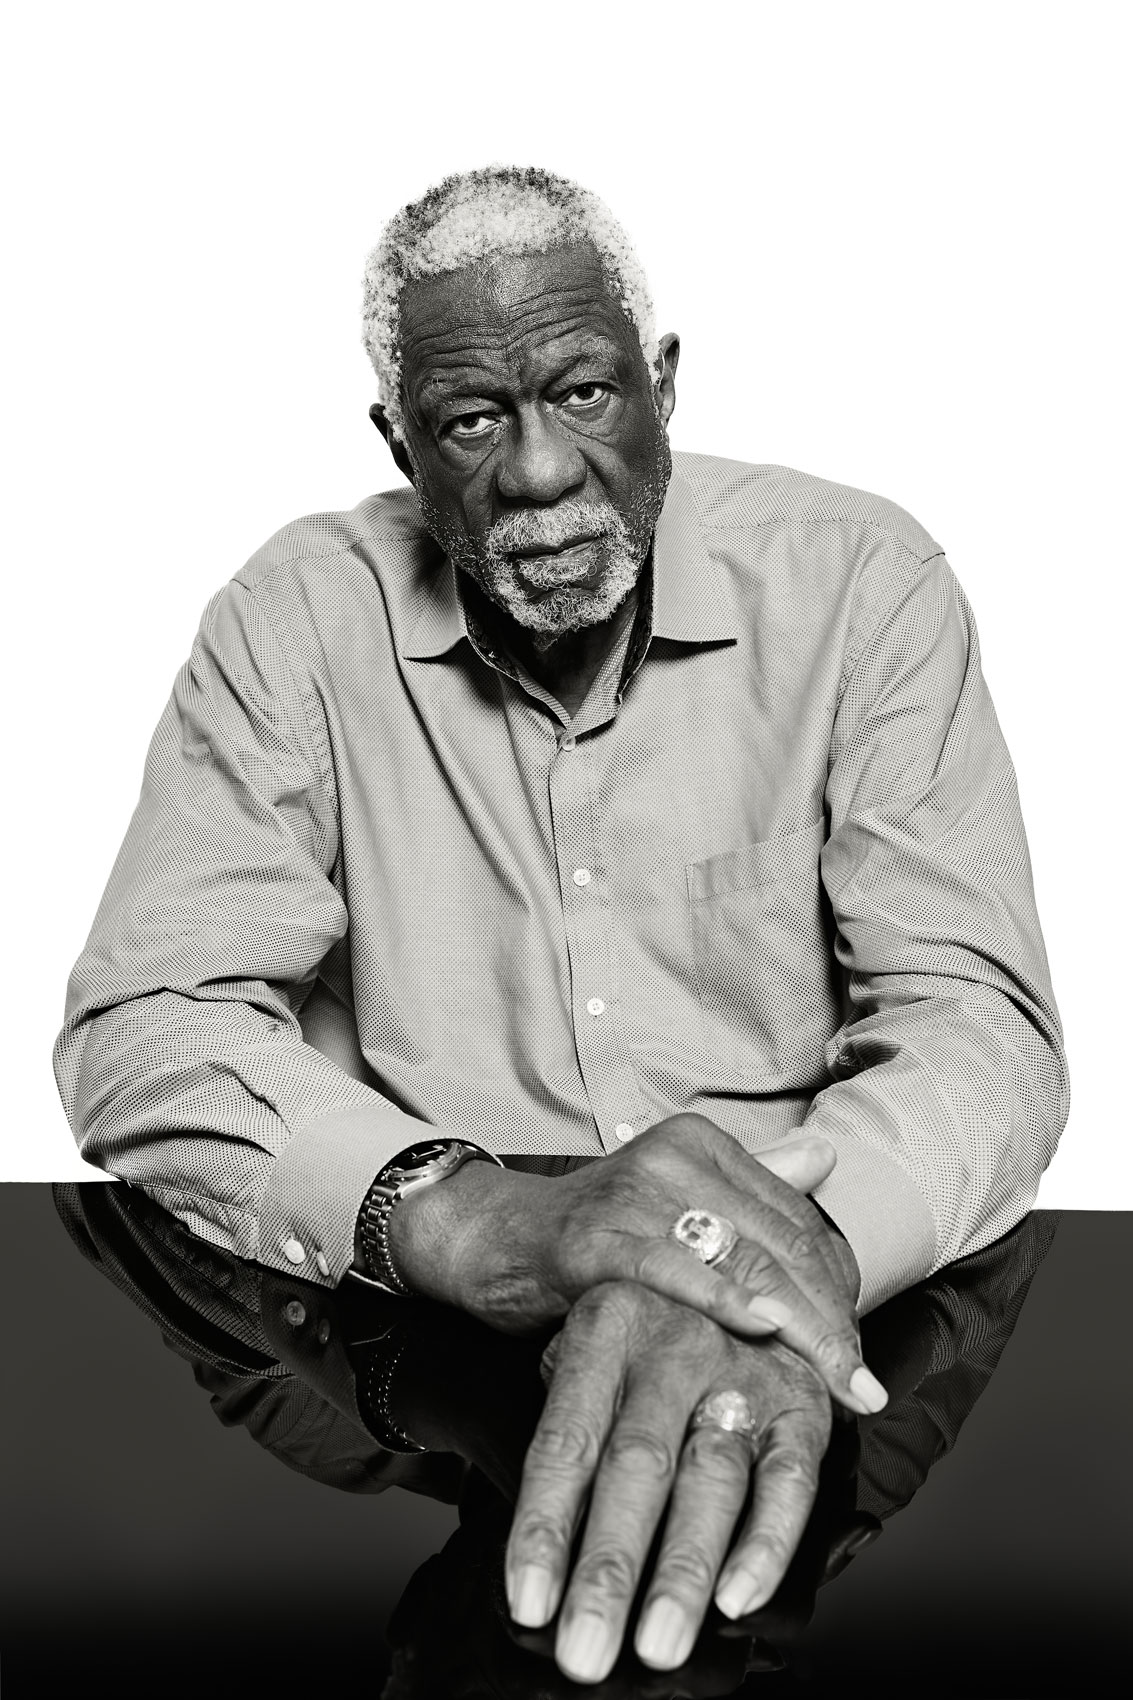 BillRussell_O5A7157-Edit